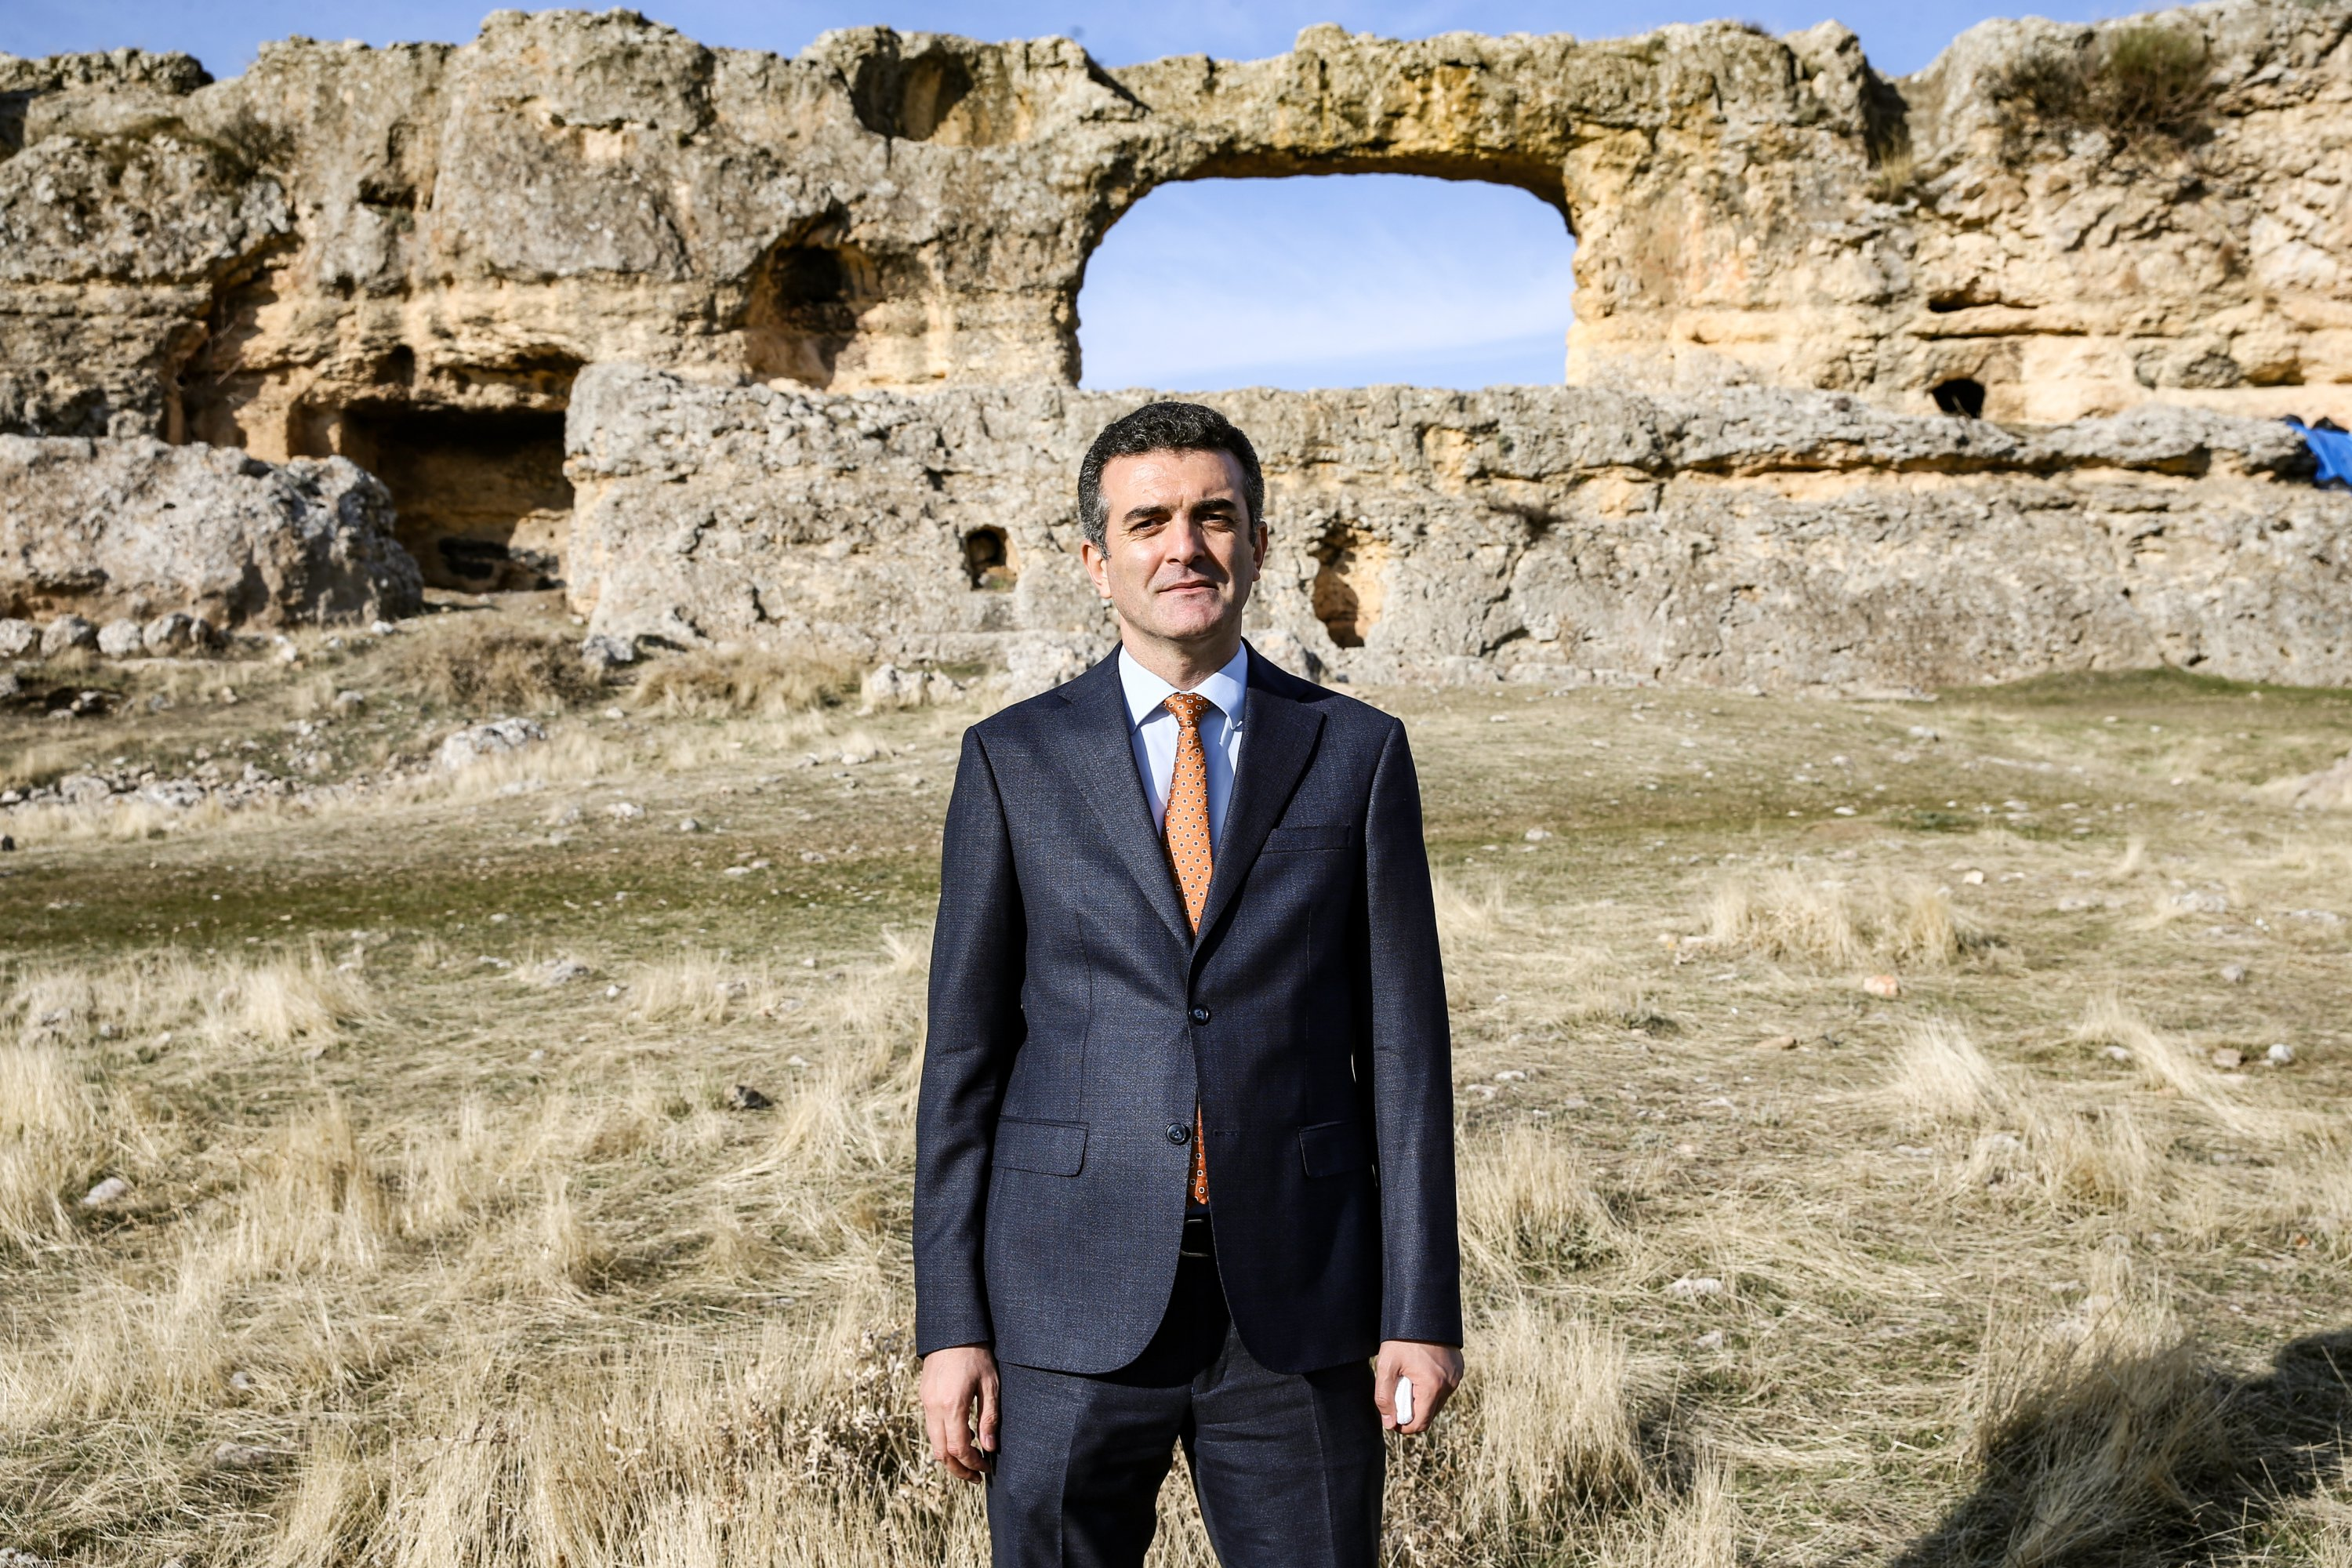 Idris Arslan, district governor and deputy mayor of the Eğil district, stands in front of Eğil Castle in Diyarbakır province, southeastern Turkey, Jan. 18, 2021. (AA Photo)